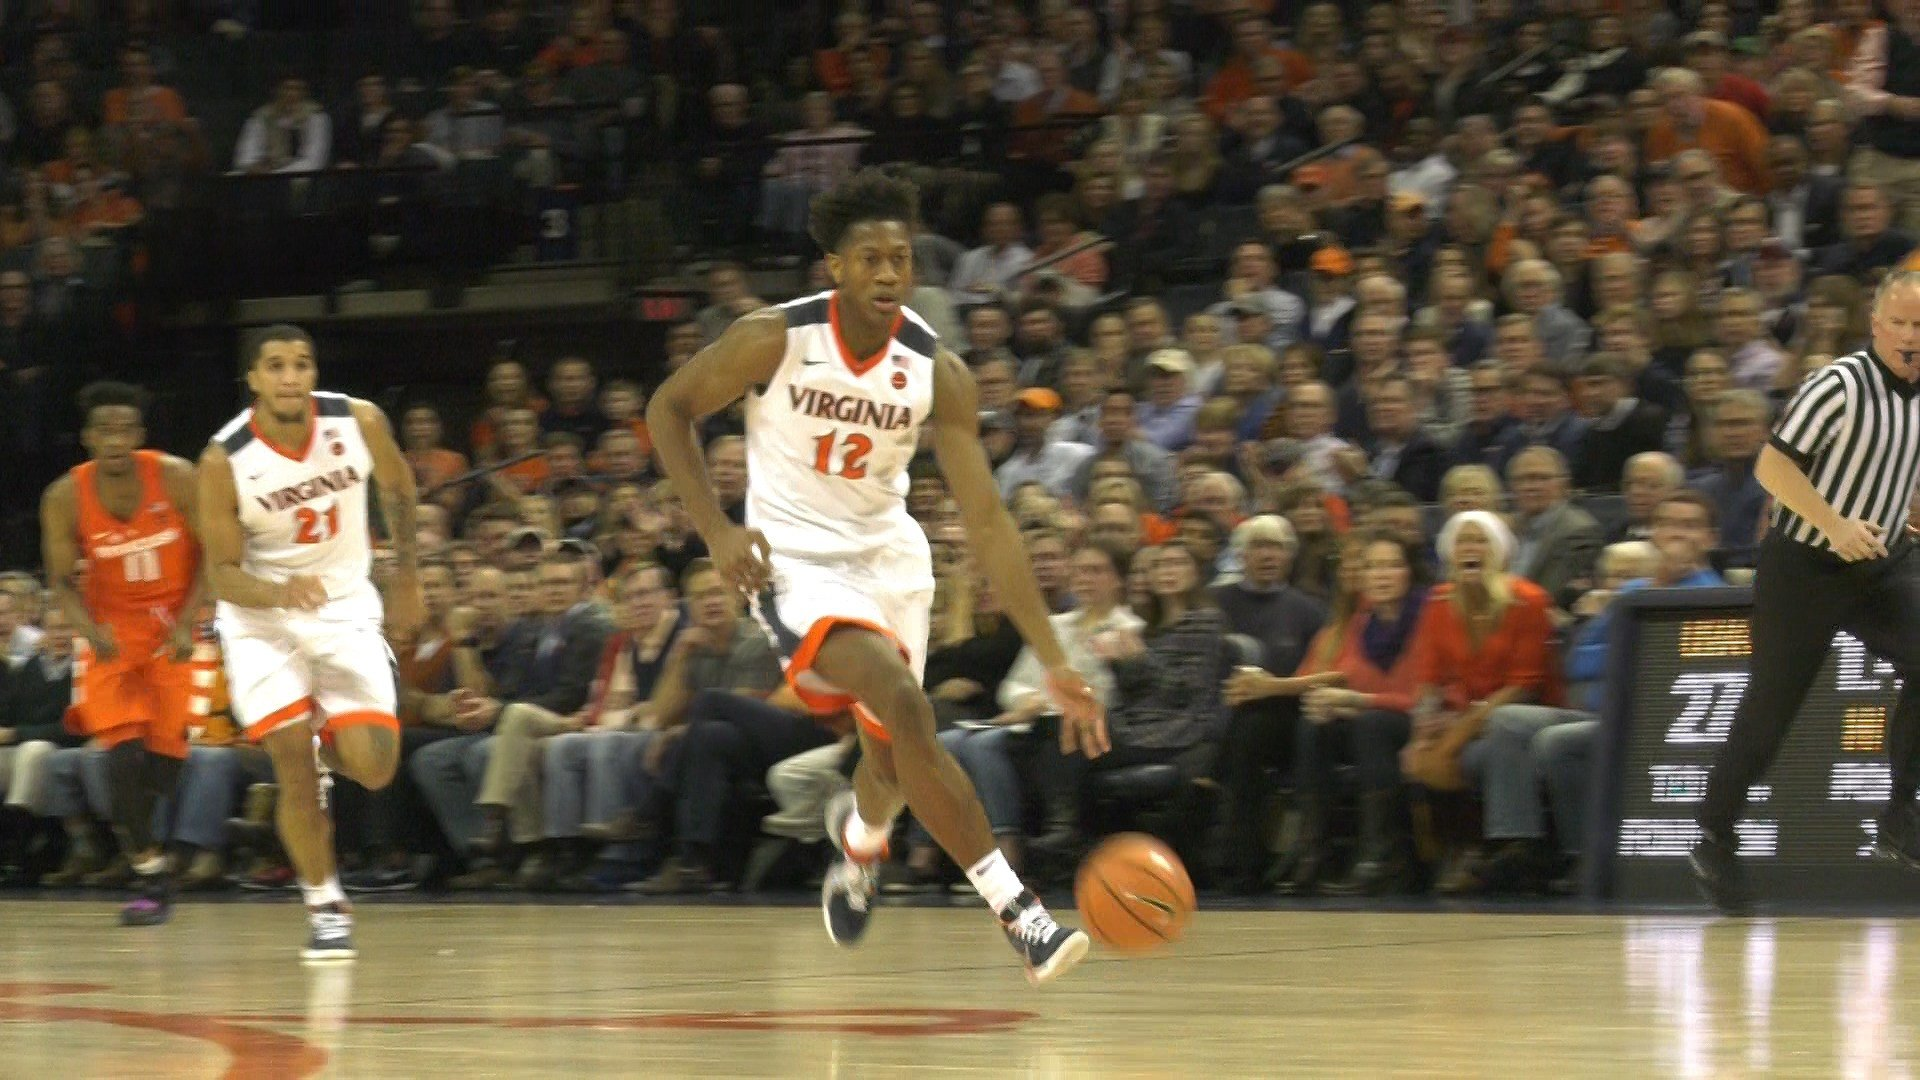 De'Andre Hunter Scored 15 points to record his third straight game with double digit points